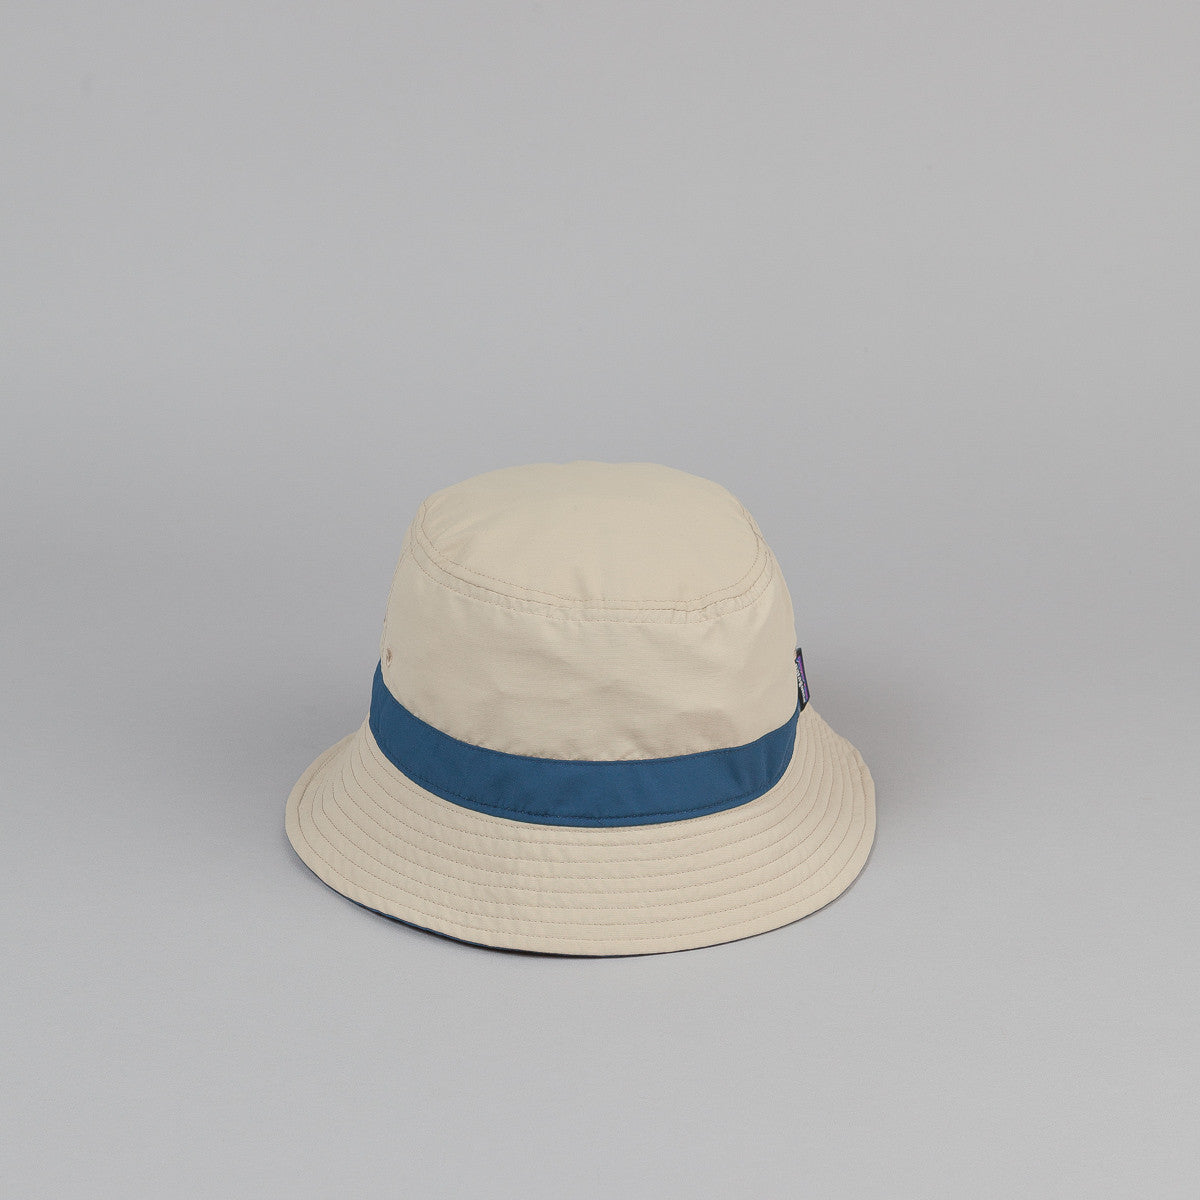 Patagonia Wavefarer Bucket Hat - El Cap Khaki w/ Glass Blue